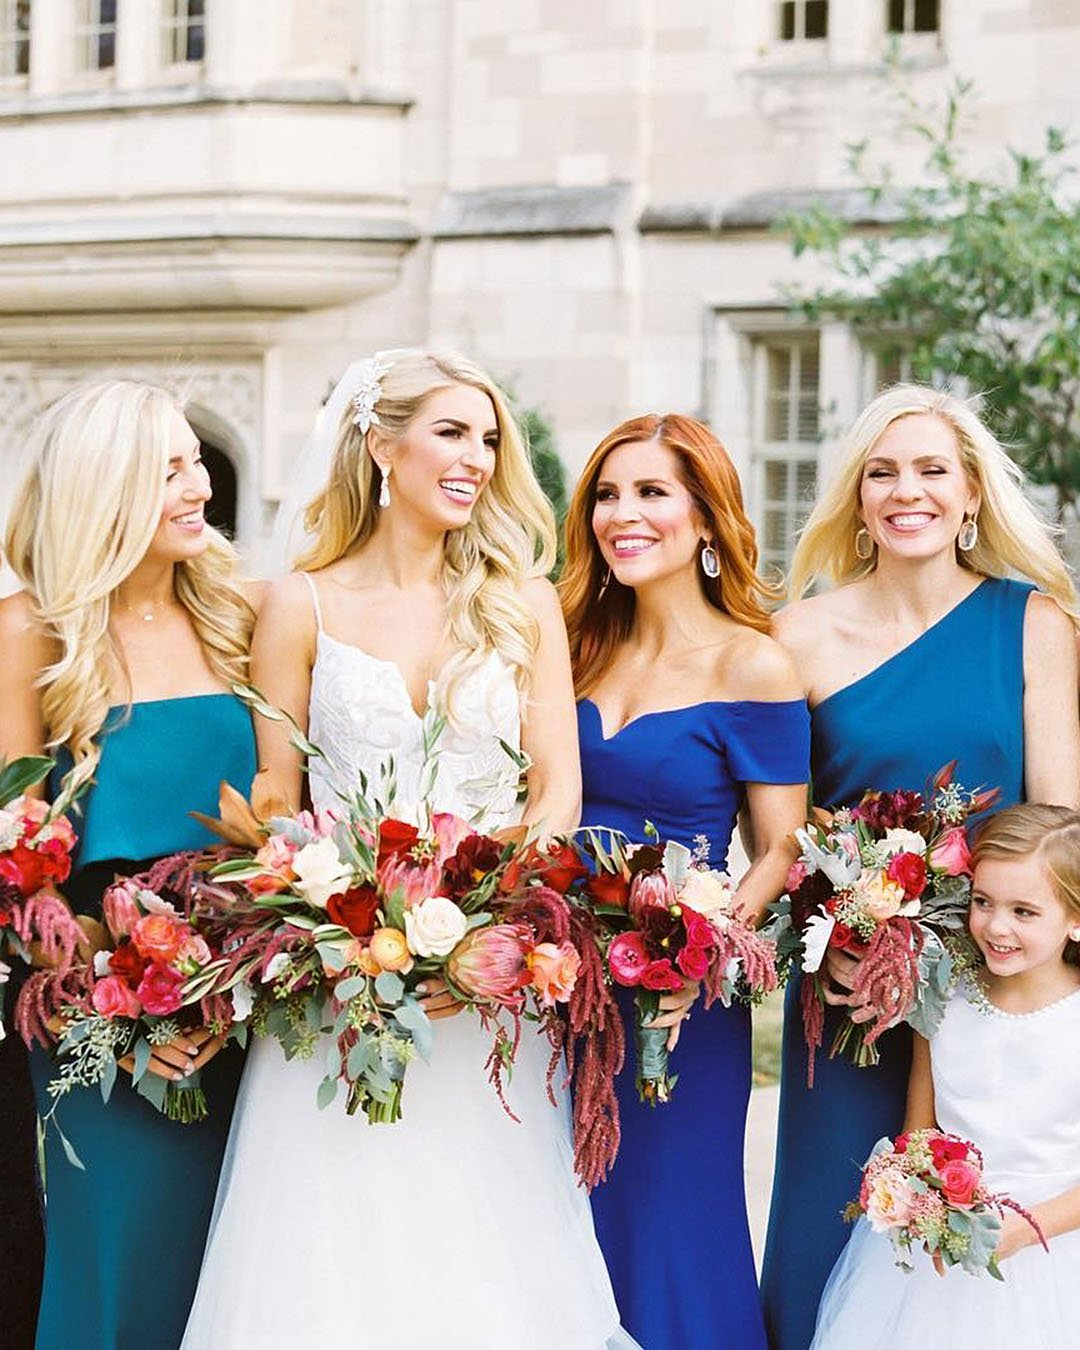 wedding trends bride with bridesmaids in blue dresses